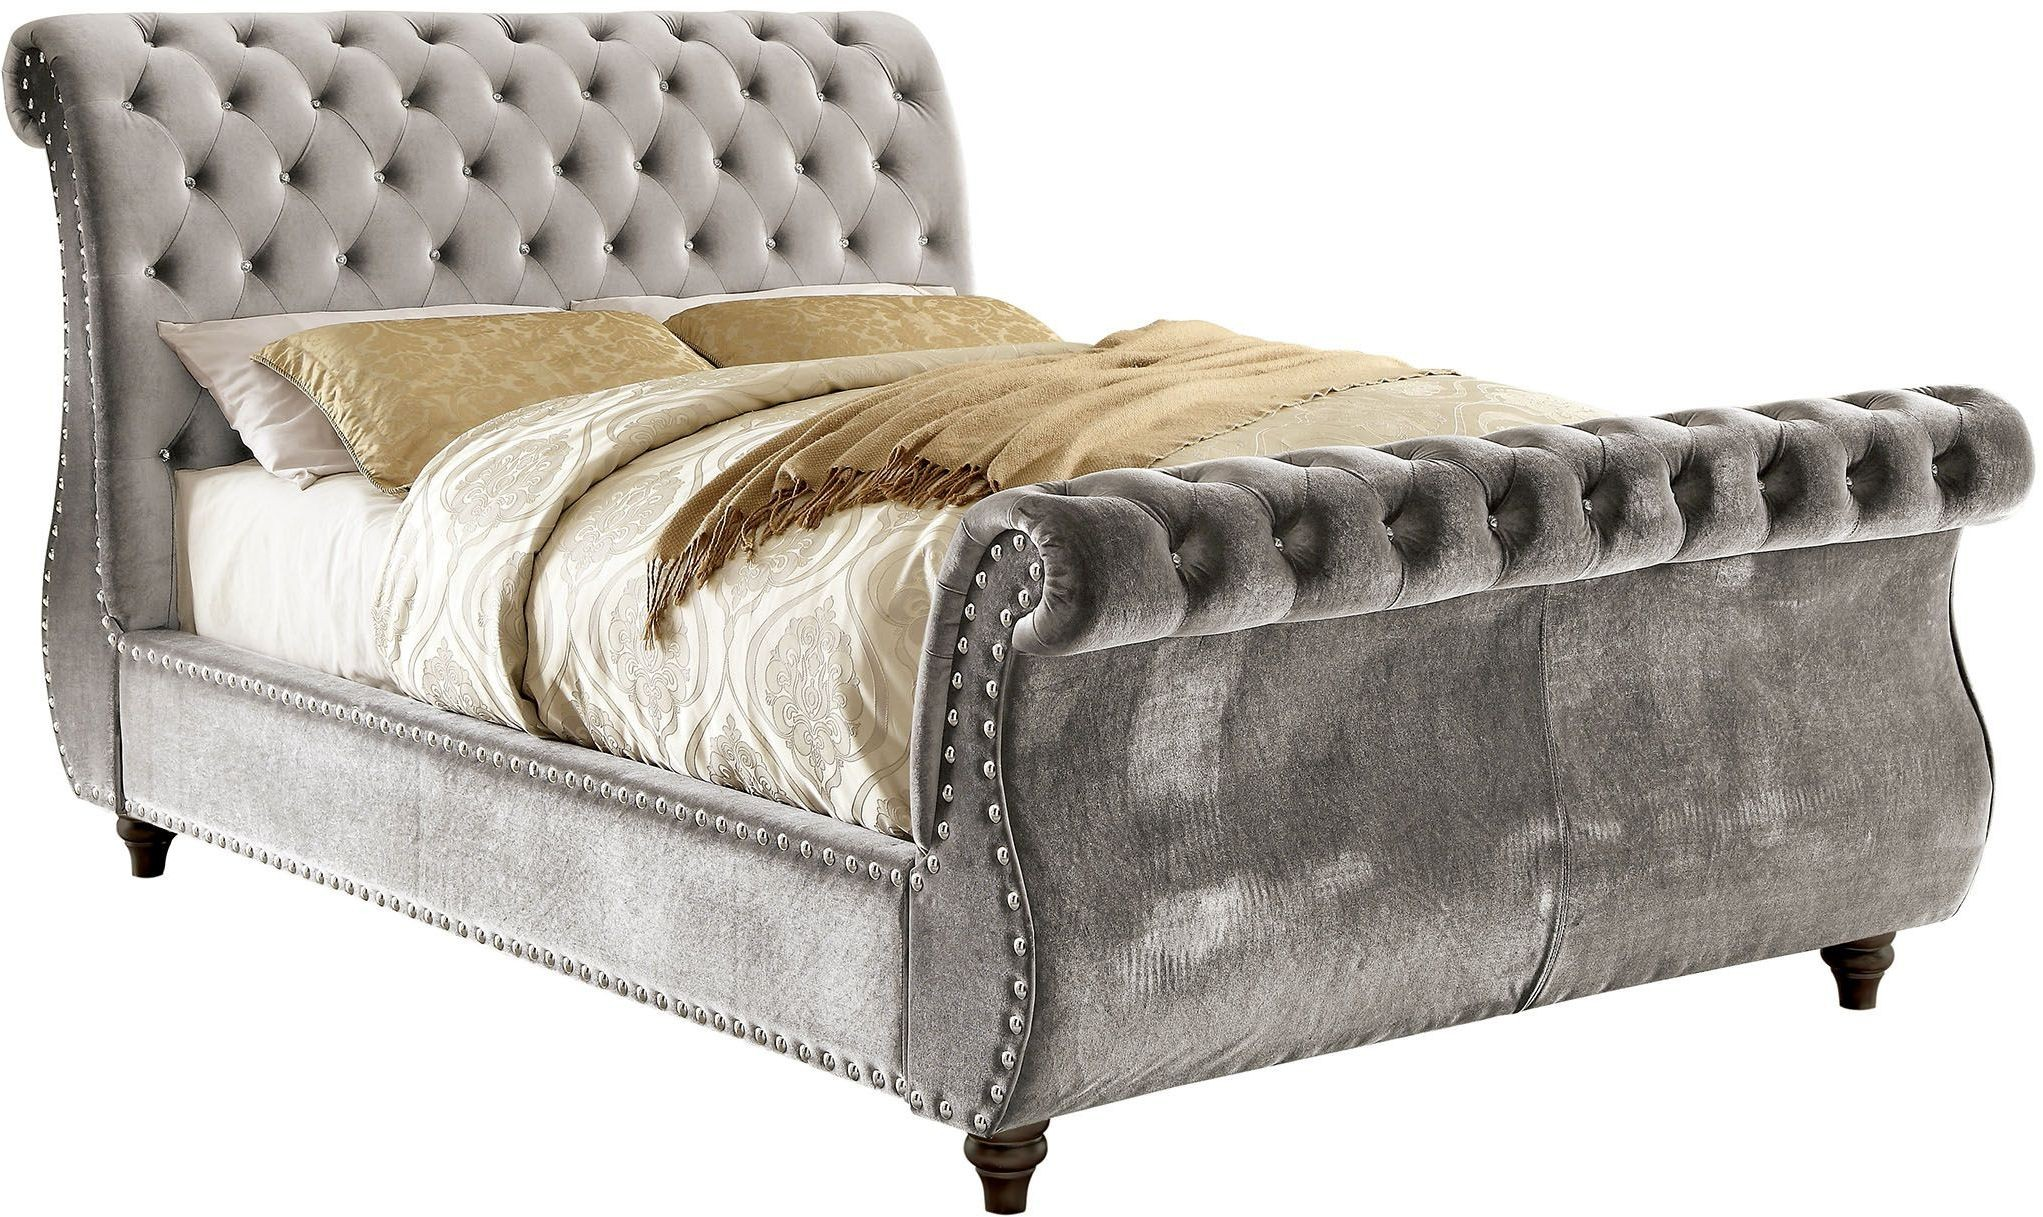 Noella gray king upholstered sleigh bed cm7128gy ek Upholstered sleigh bed